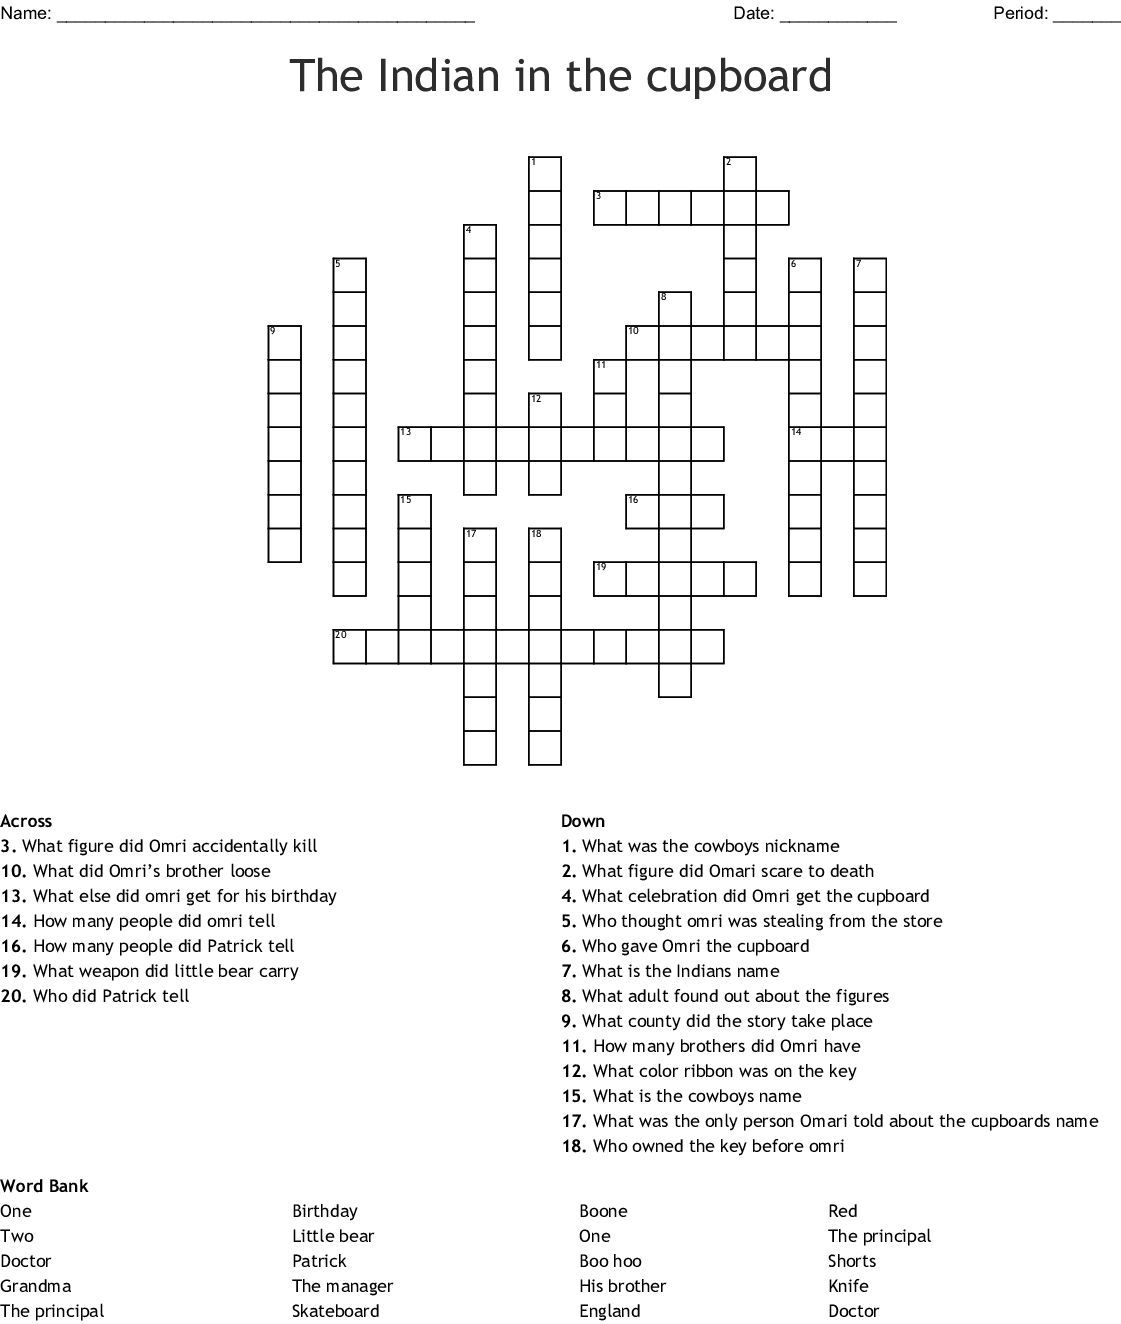 The Indian In The Cupboard Crossword